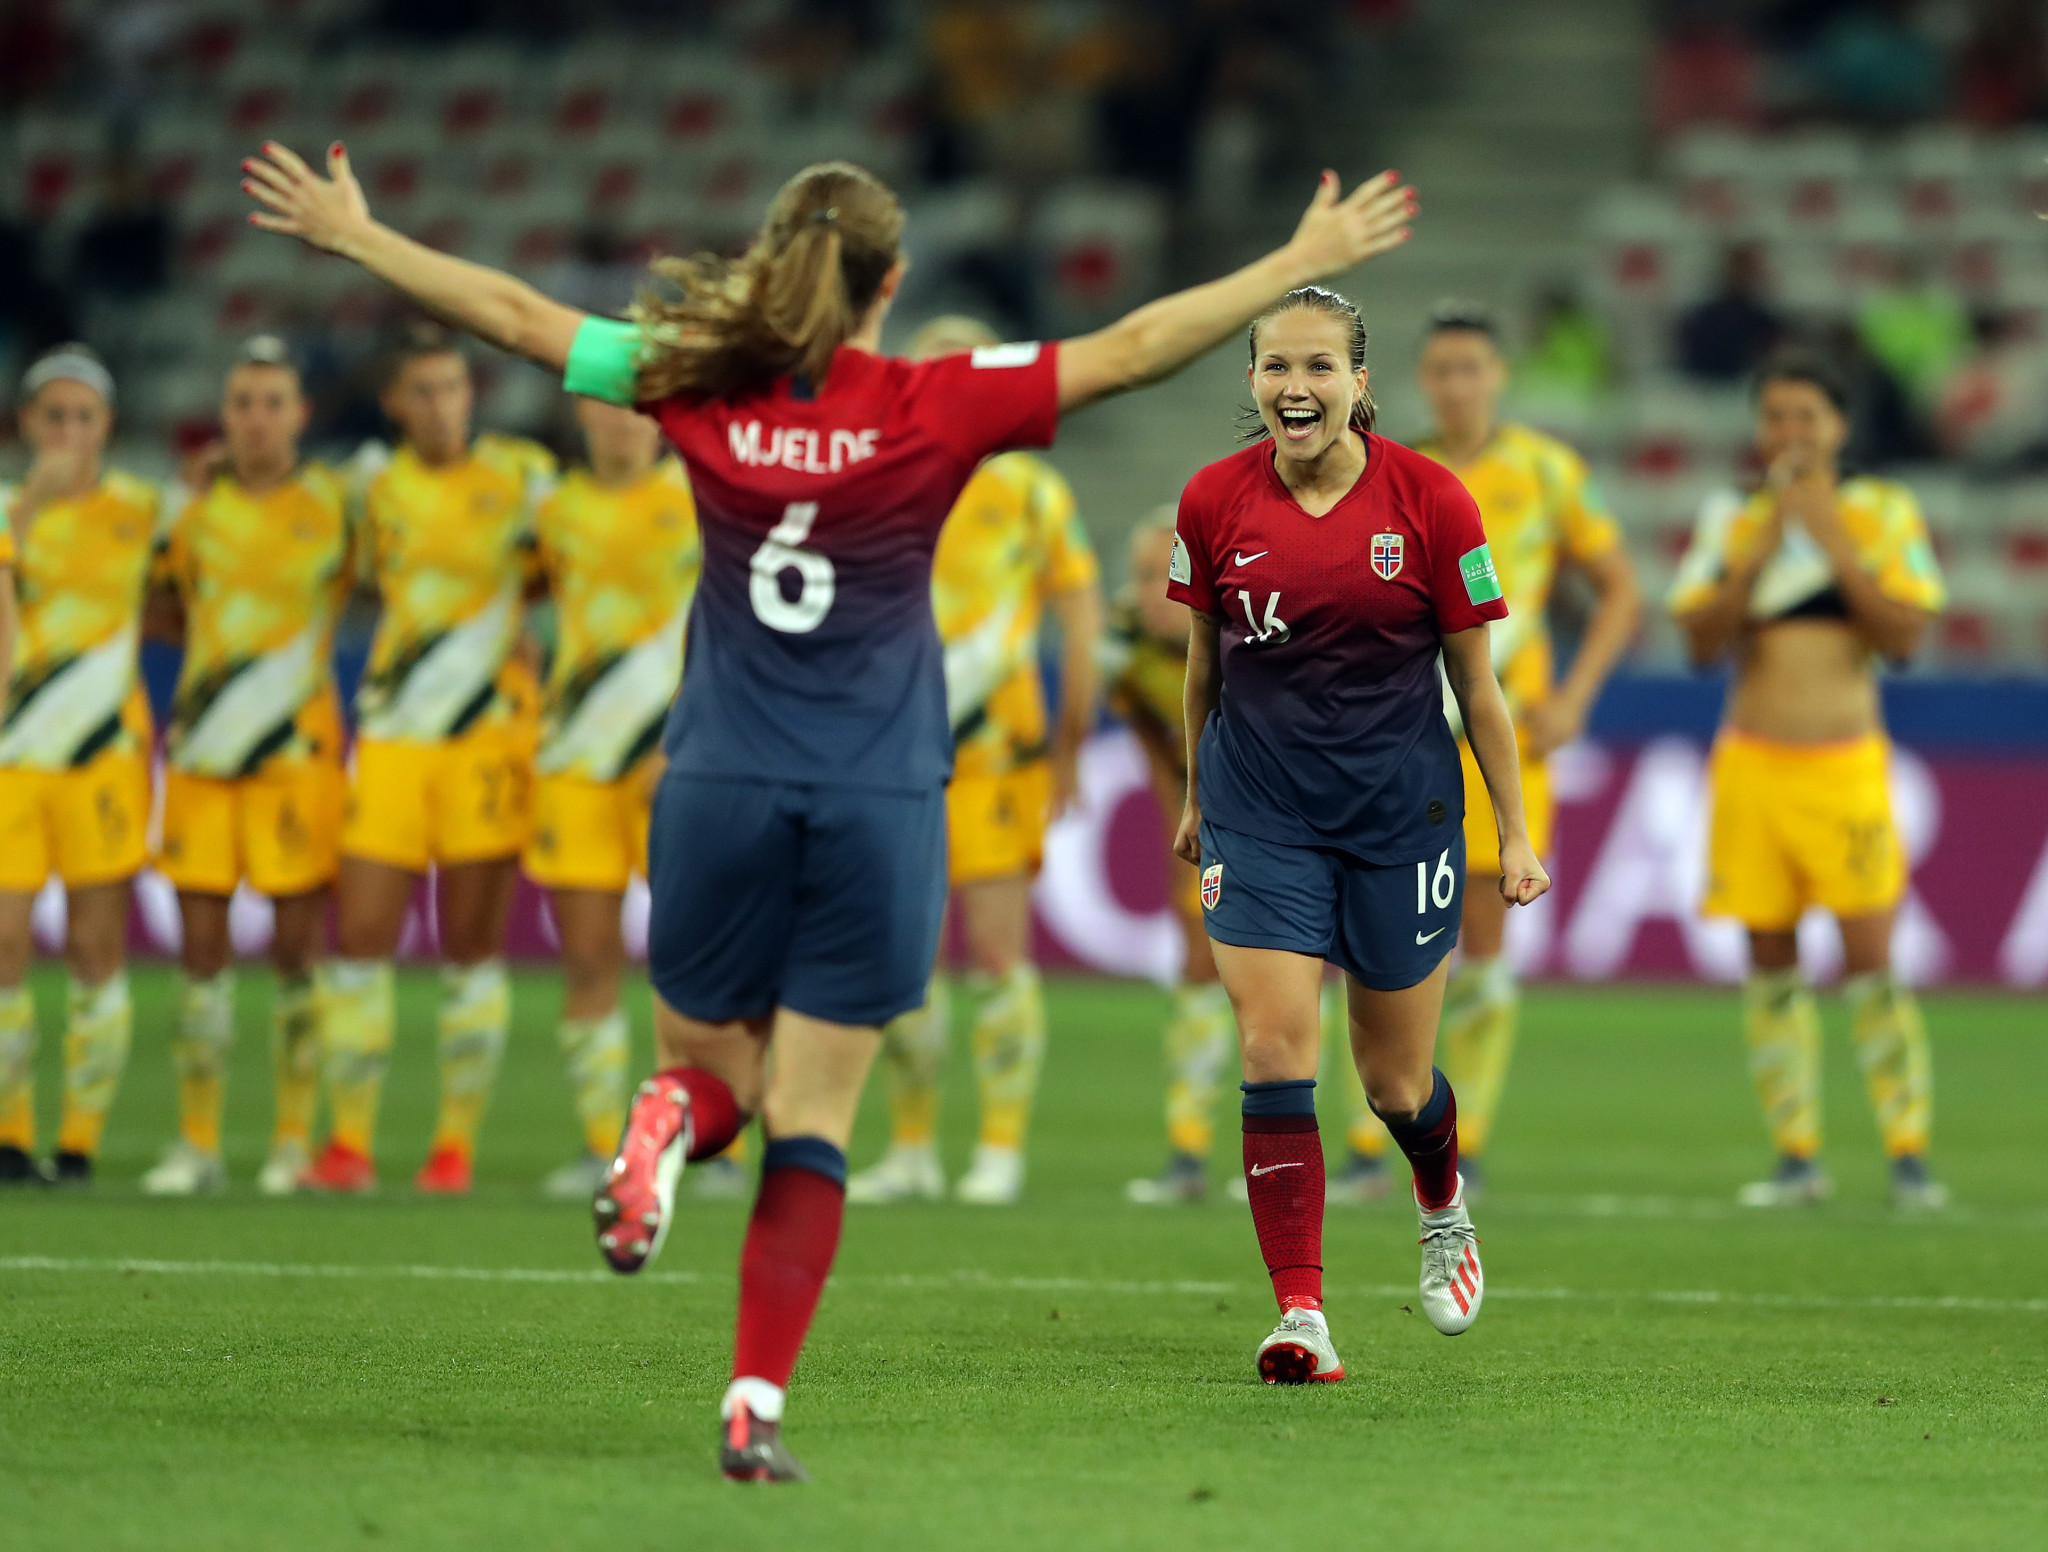 The game went all the way to penalties, with Norway scoring all their efforts to triumph 4-1 ©Getty Images